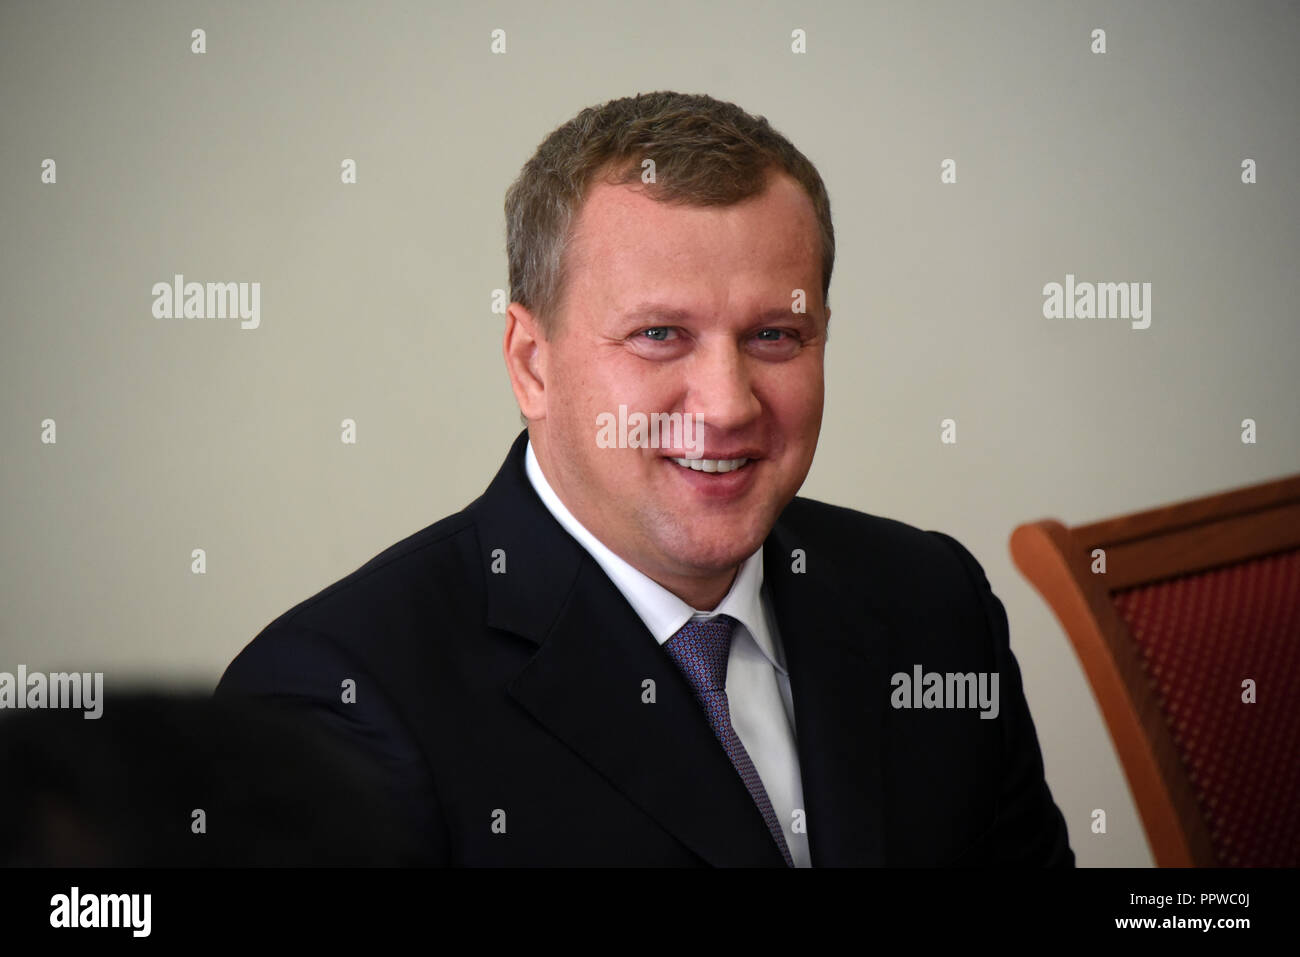 Acting governor of Astrakhan region Sergey Morozov during his presenting to the government of Astrakhan region. Russia. - Stock Image